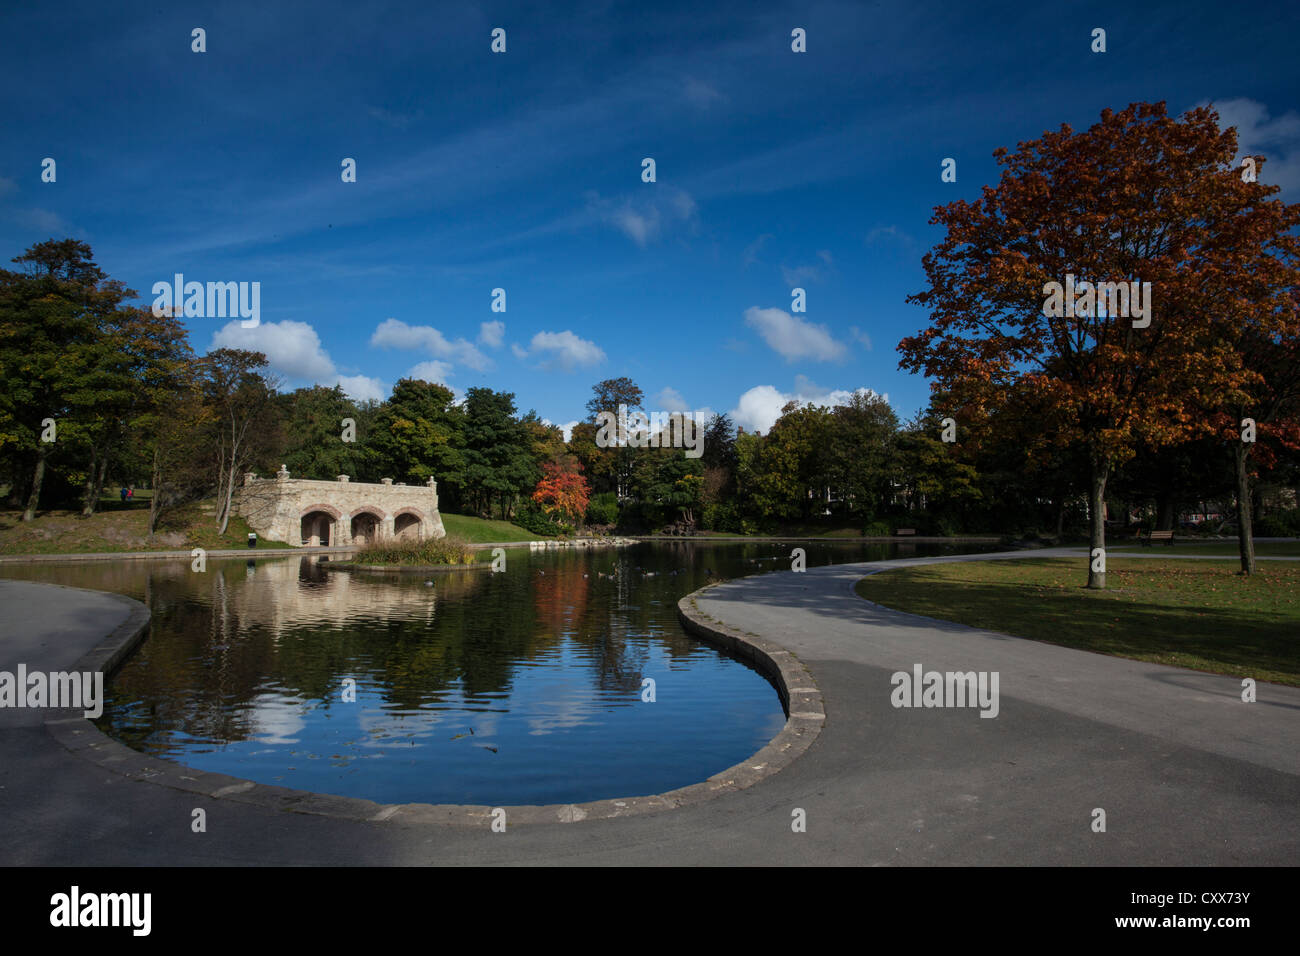 The Lake in Greenhead Park, Huddersfield, West Yorkshire - Stock Image